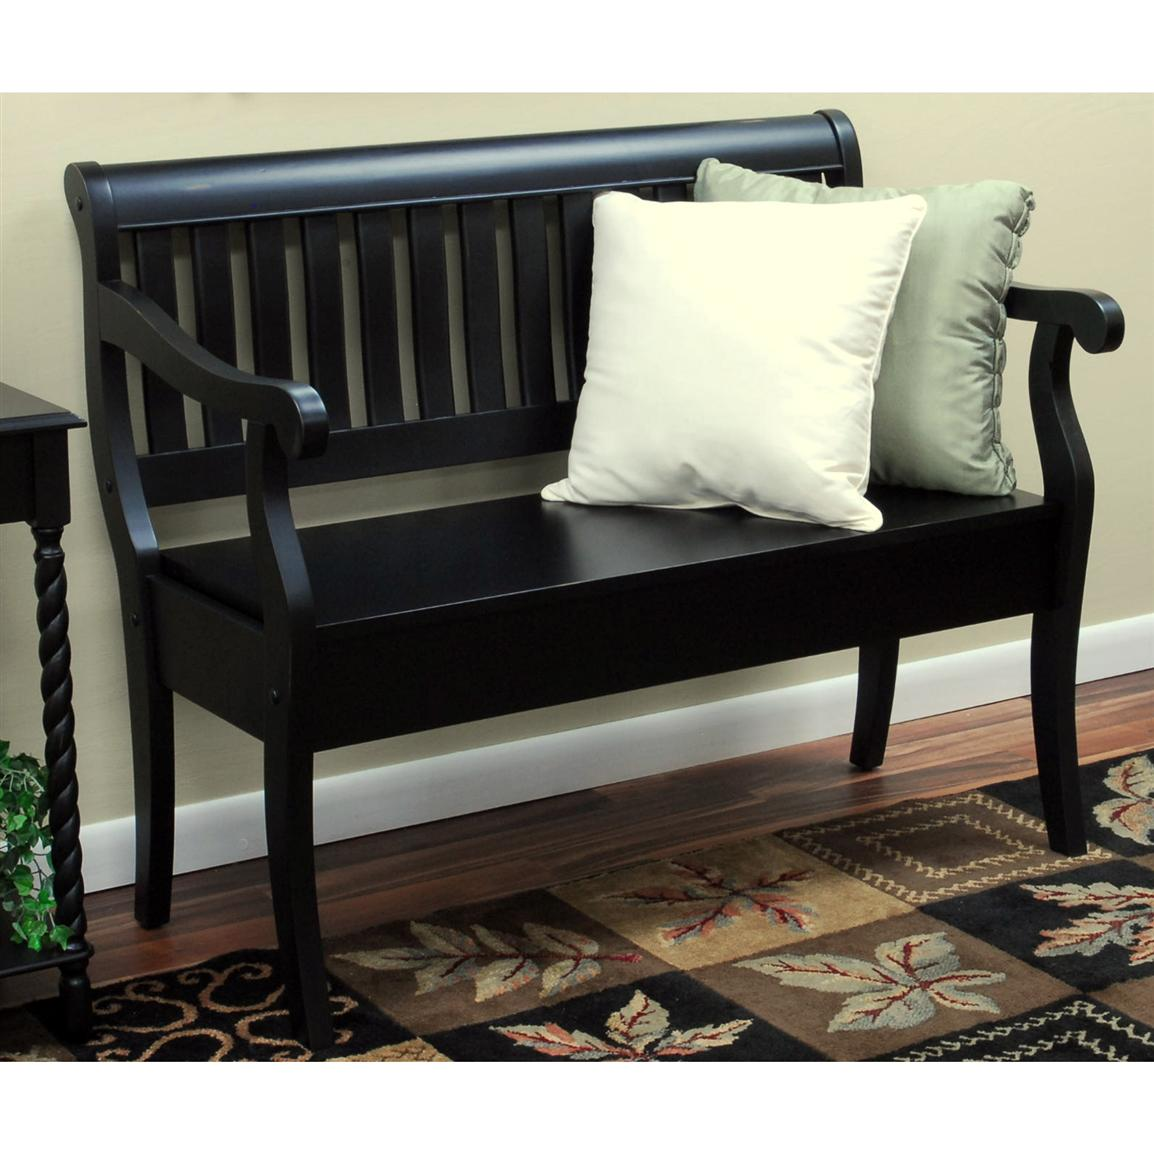 Carolina Chair & Table Co. Kylie Storage Bench